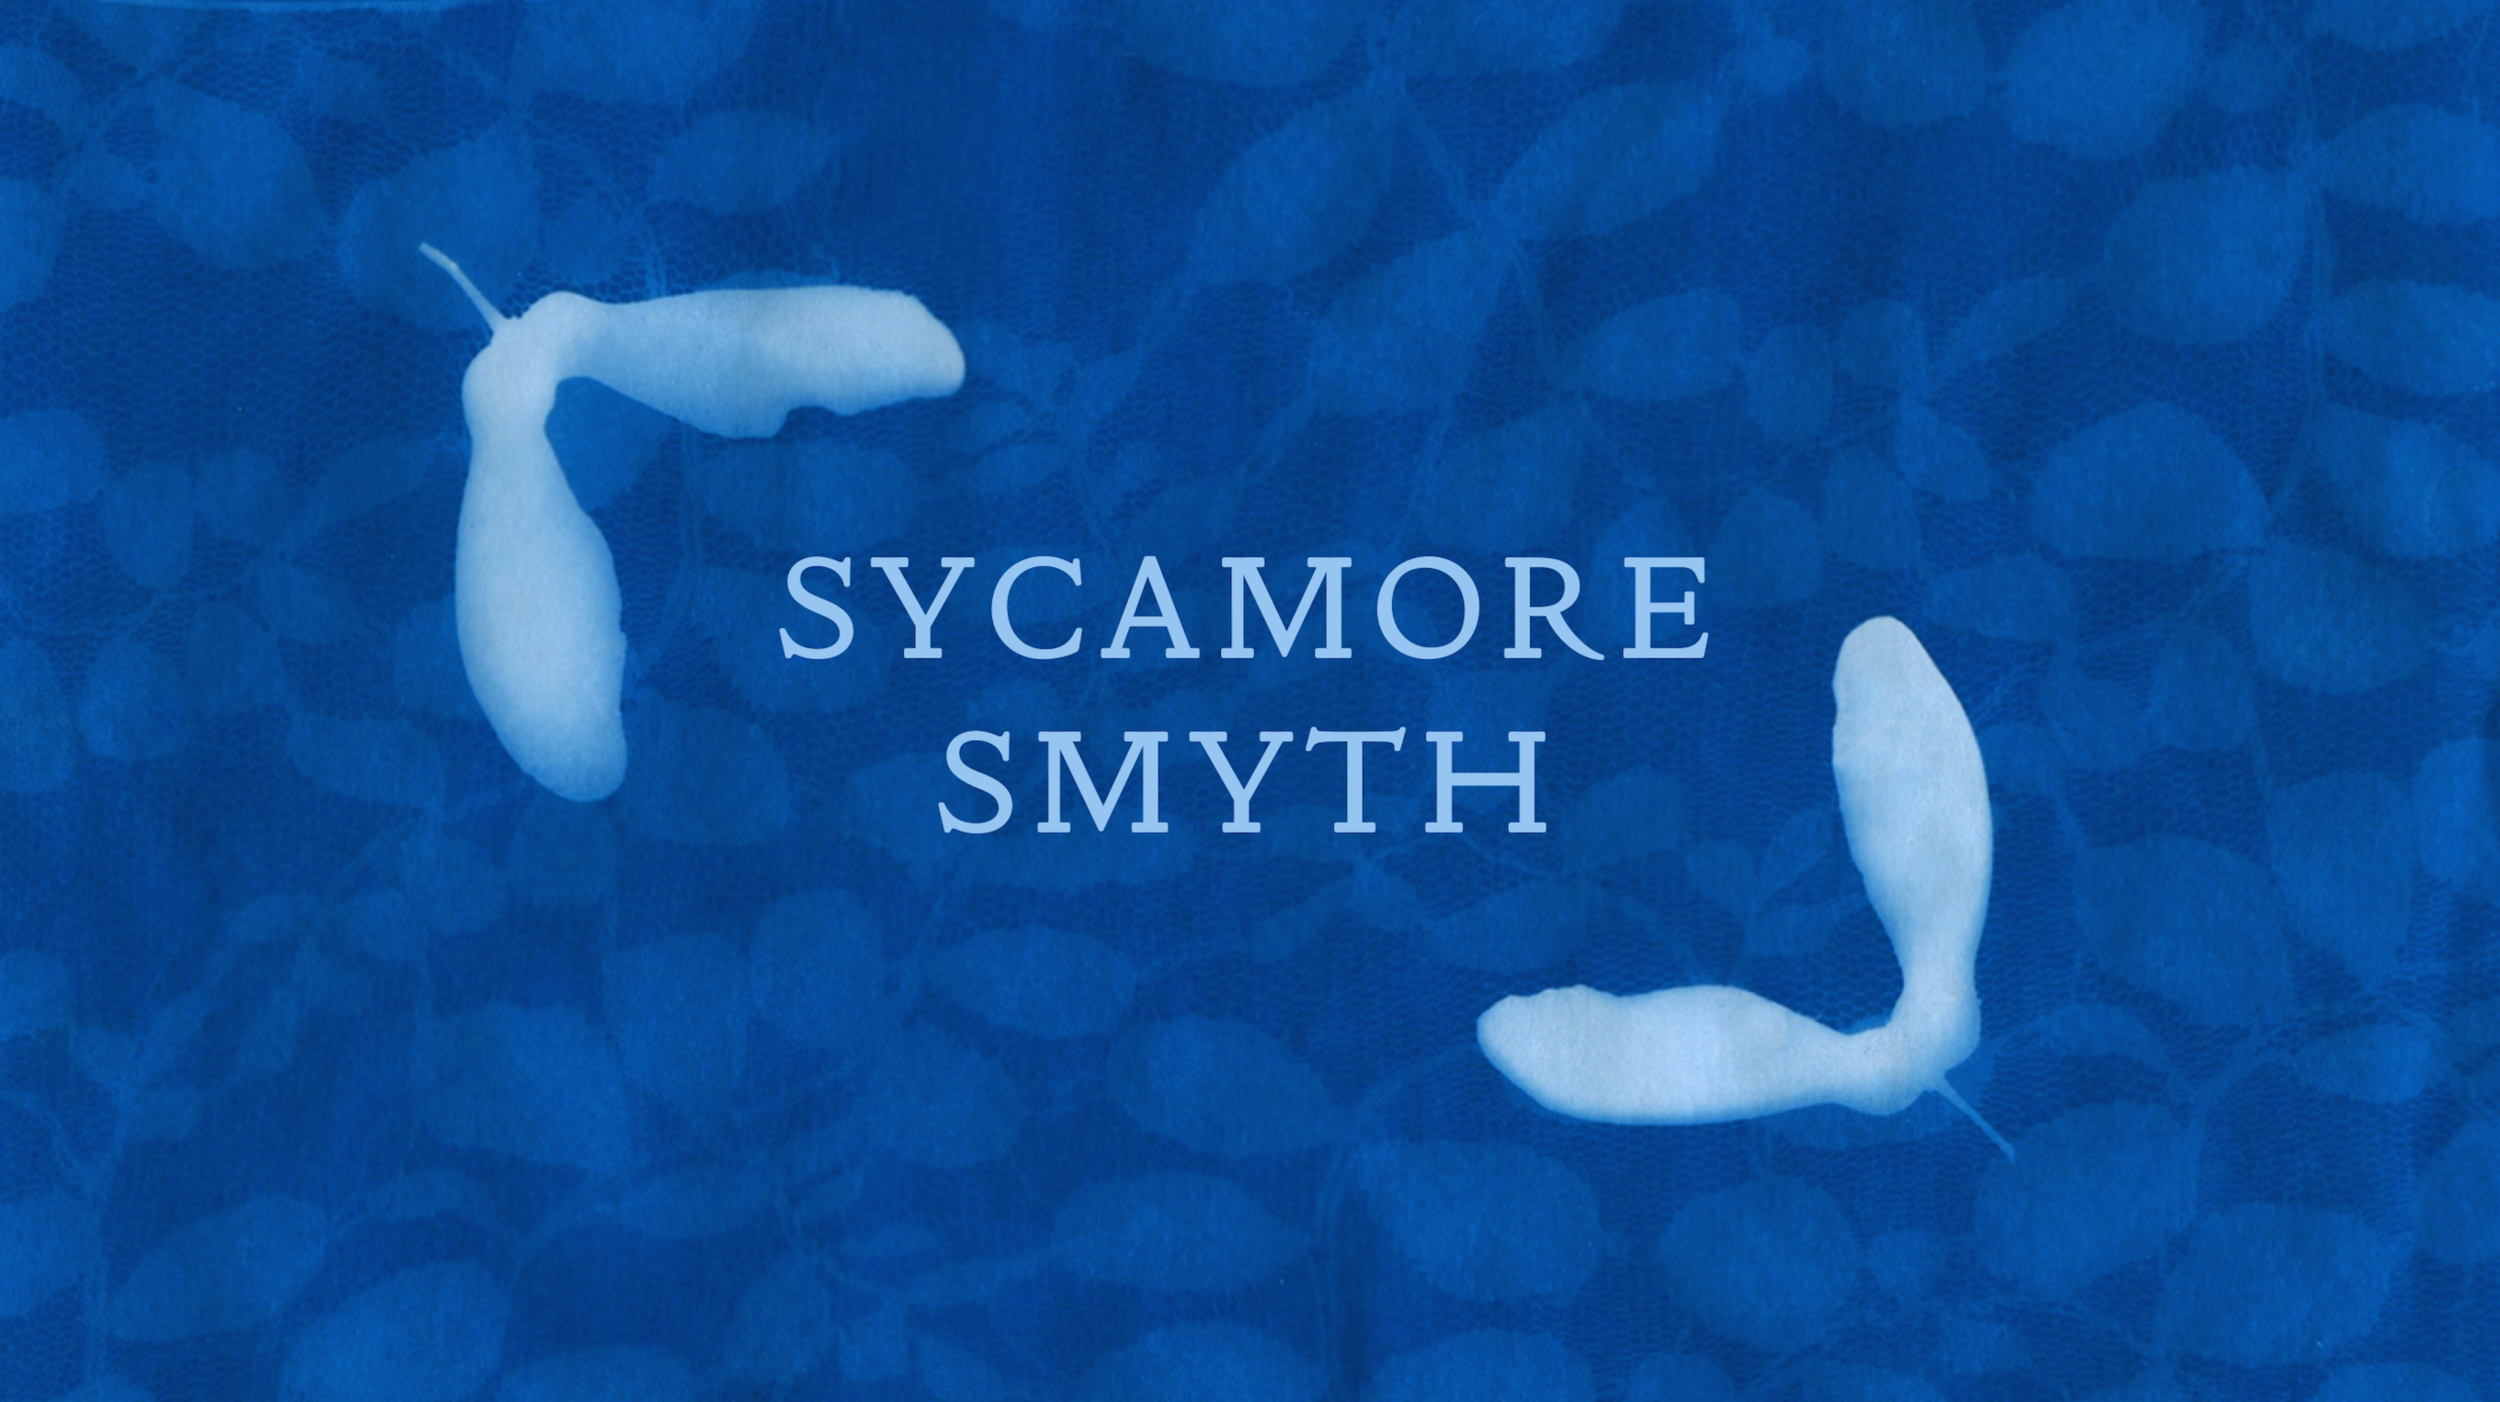 sycamore smyth logo (smaller version).png